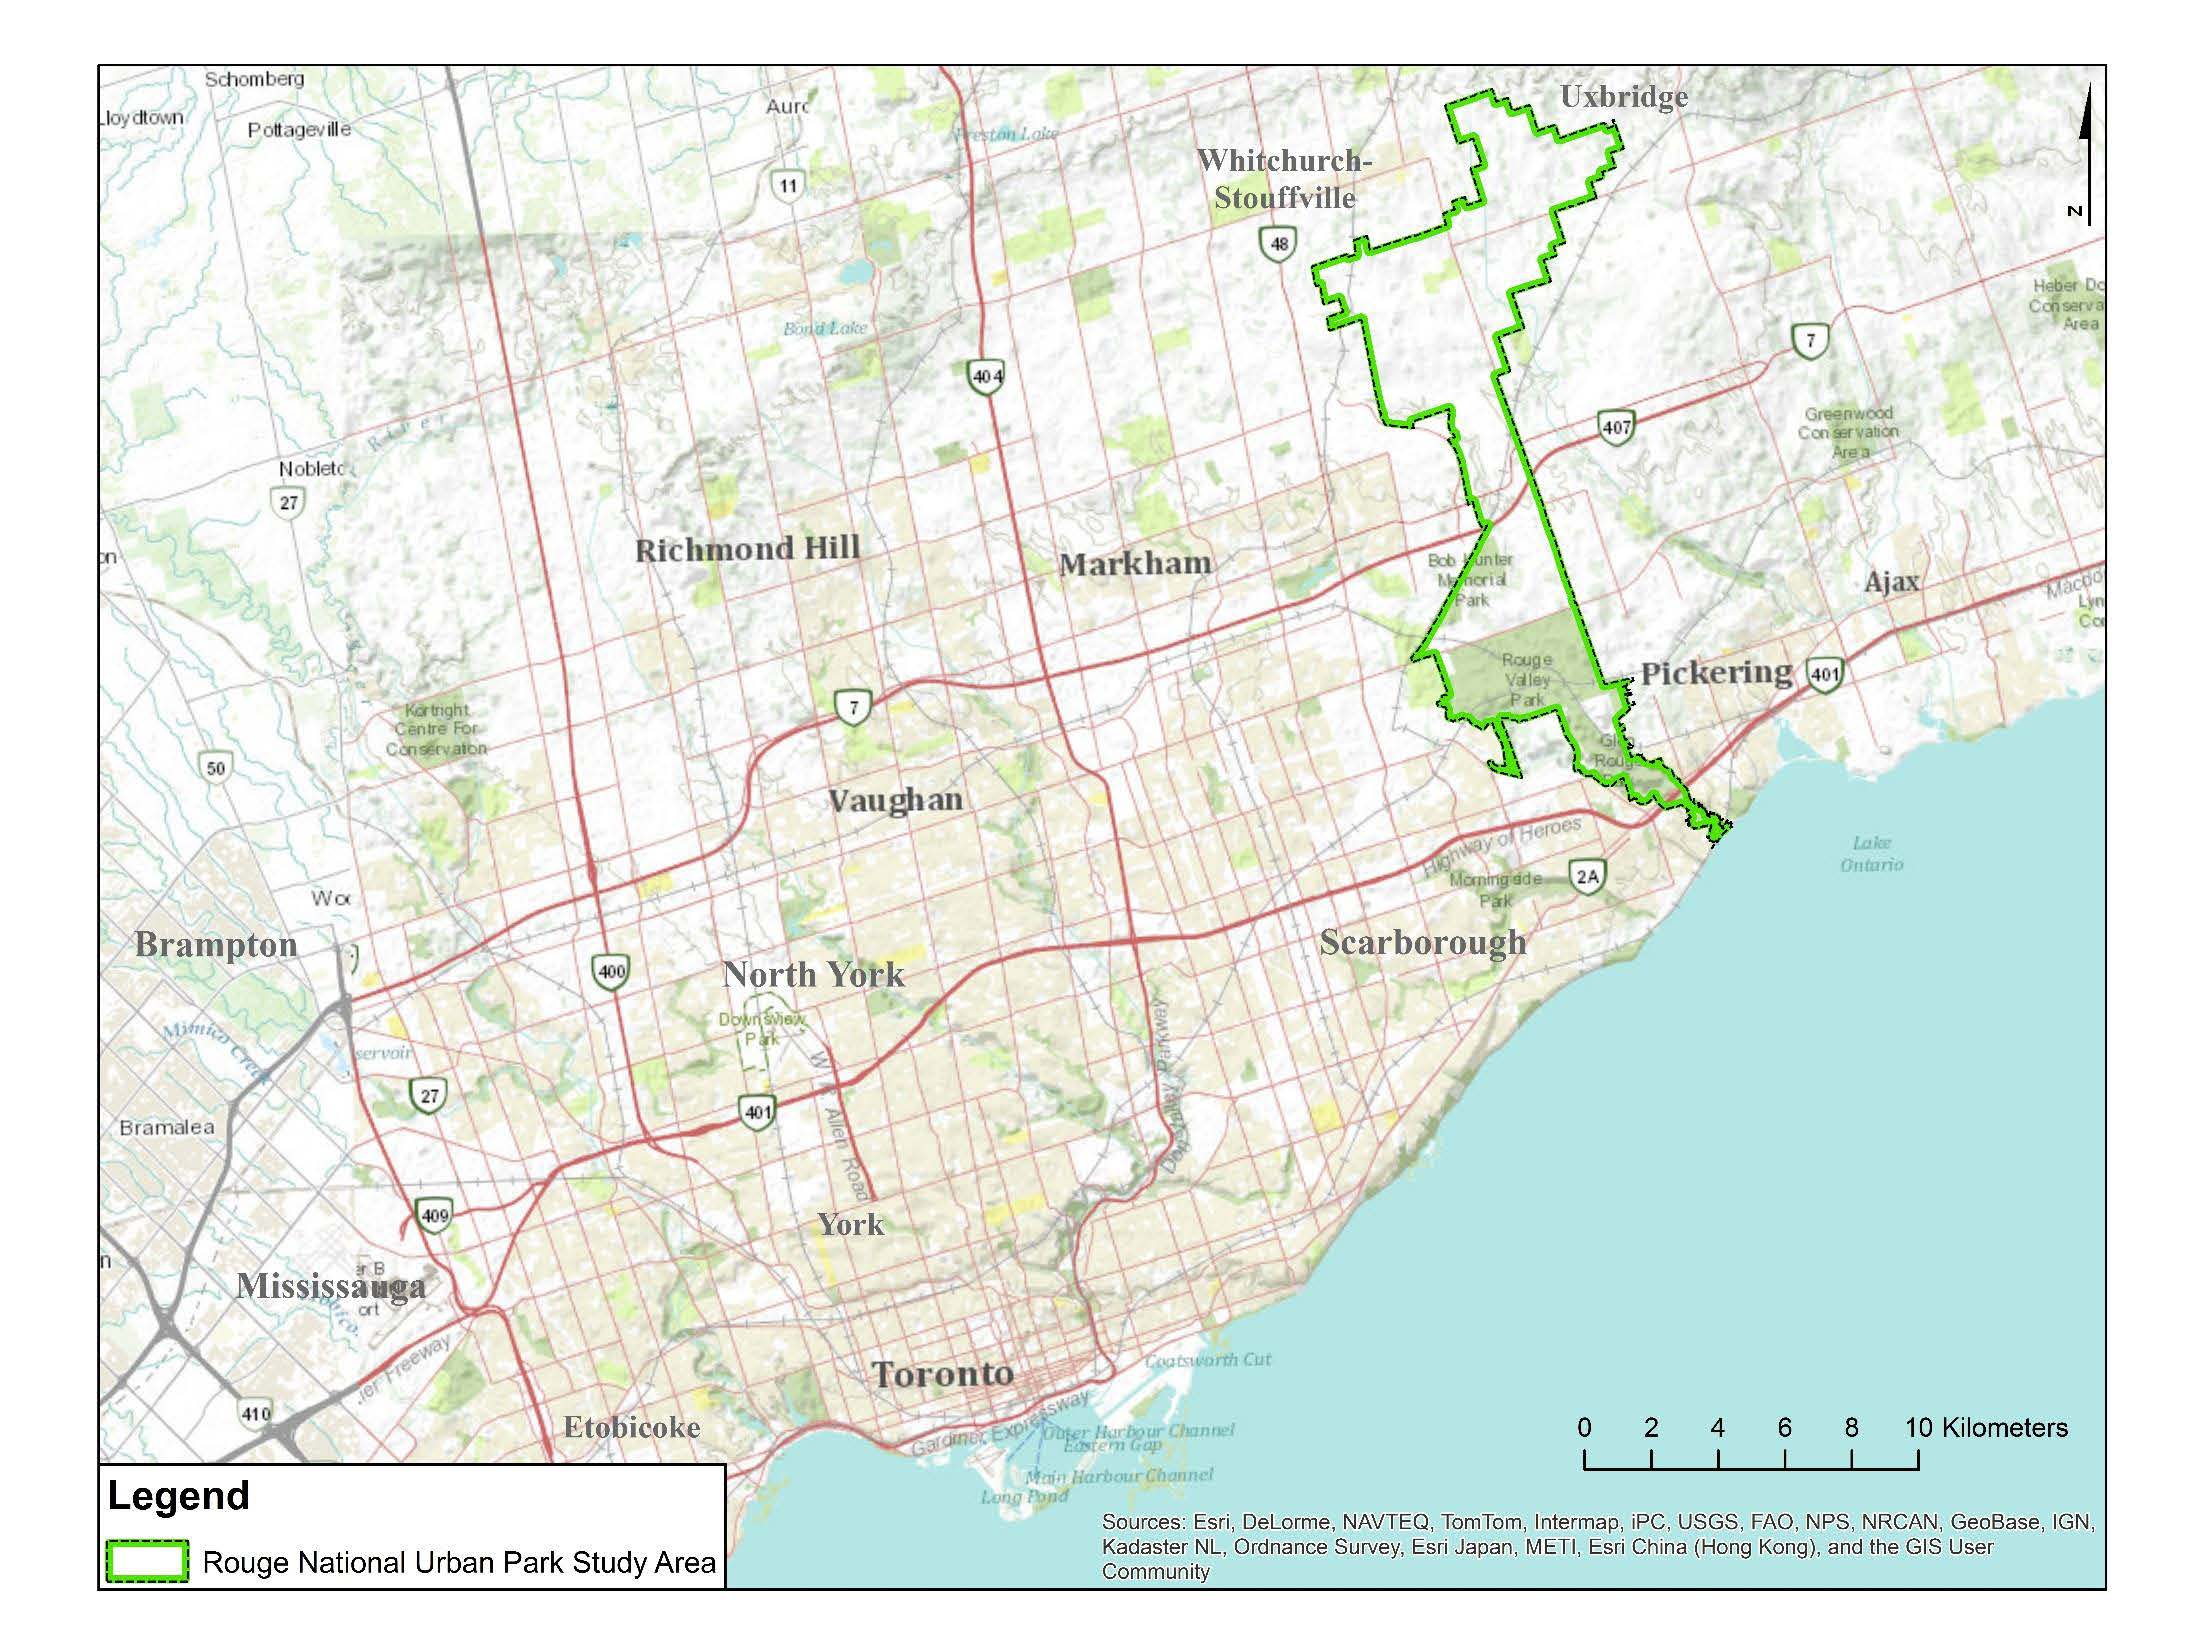 Carte du Parc urbain national de la Rouge et de la région du Grand Toronto